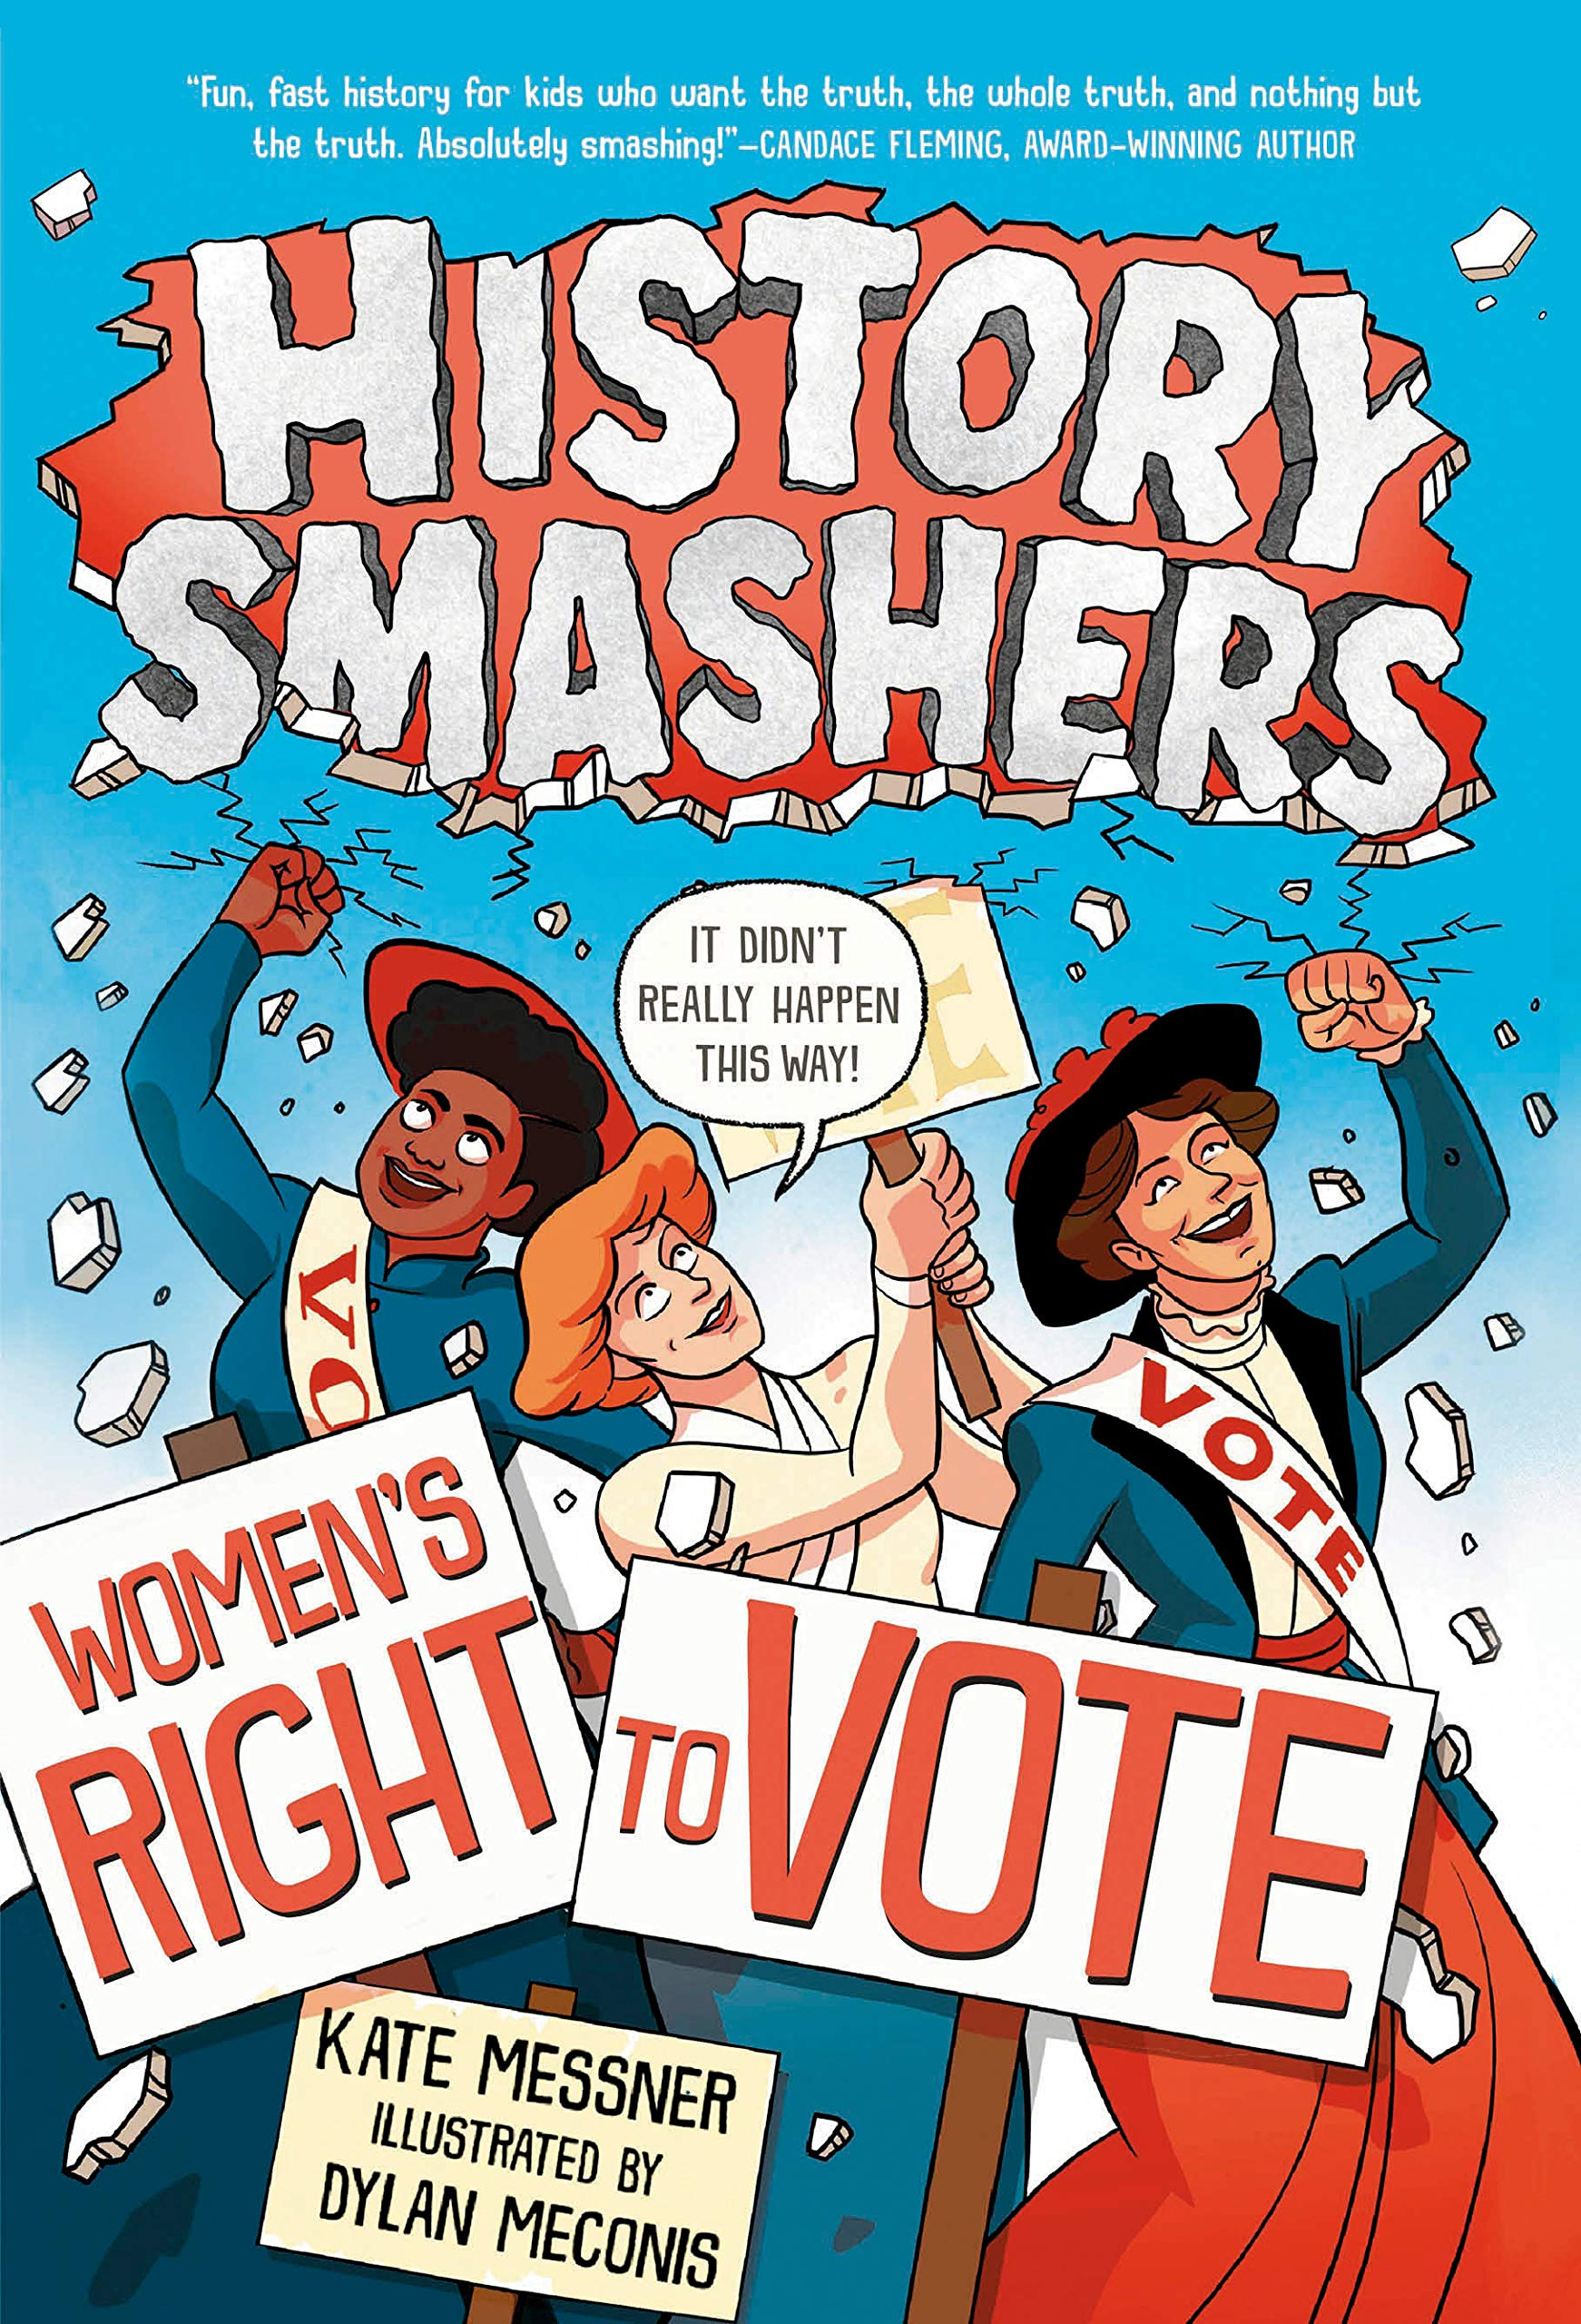 Cover art for History Smashers: Women's Right to Vote